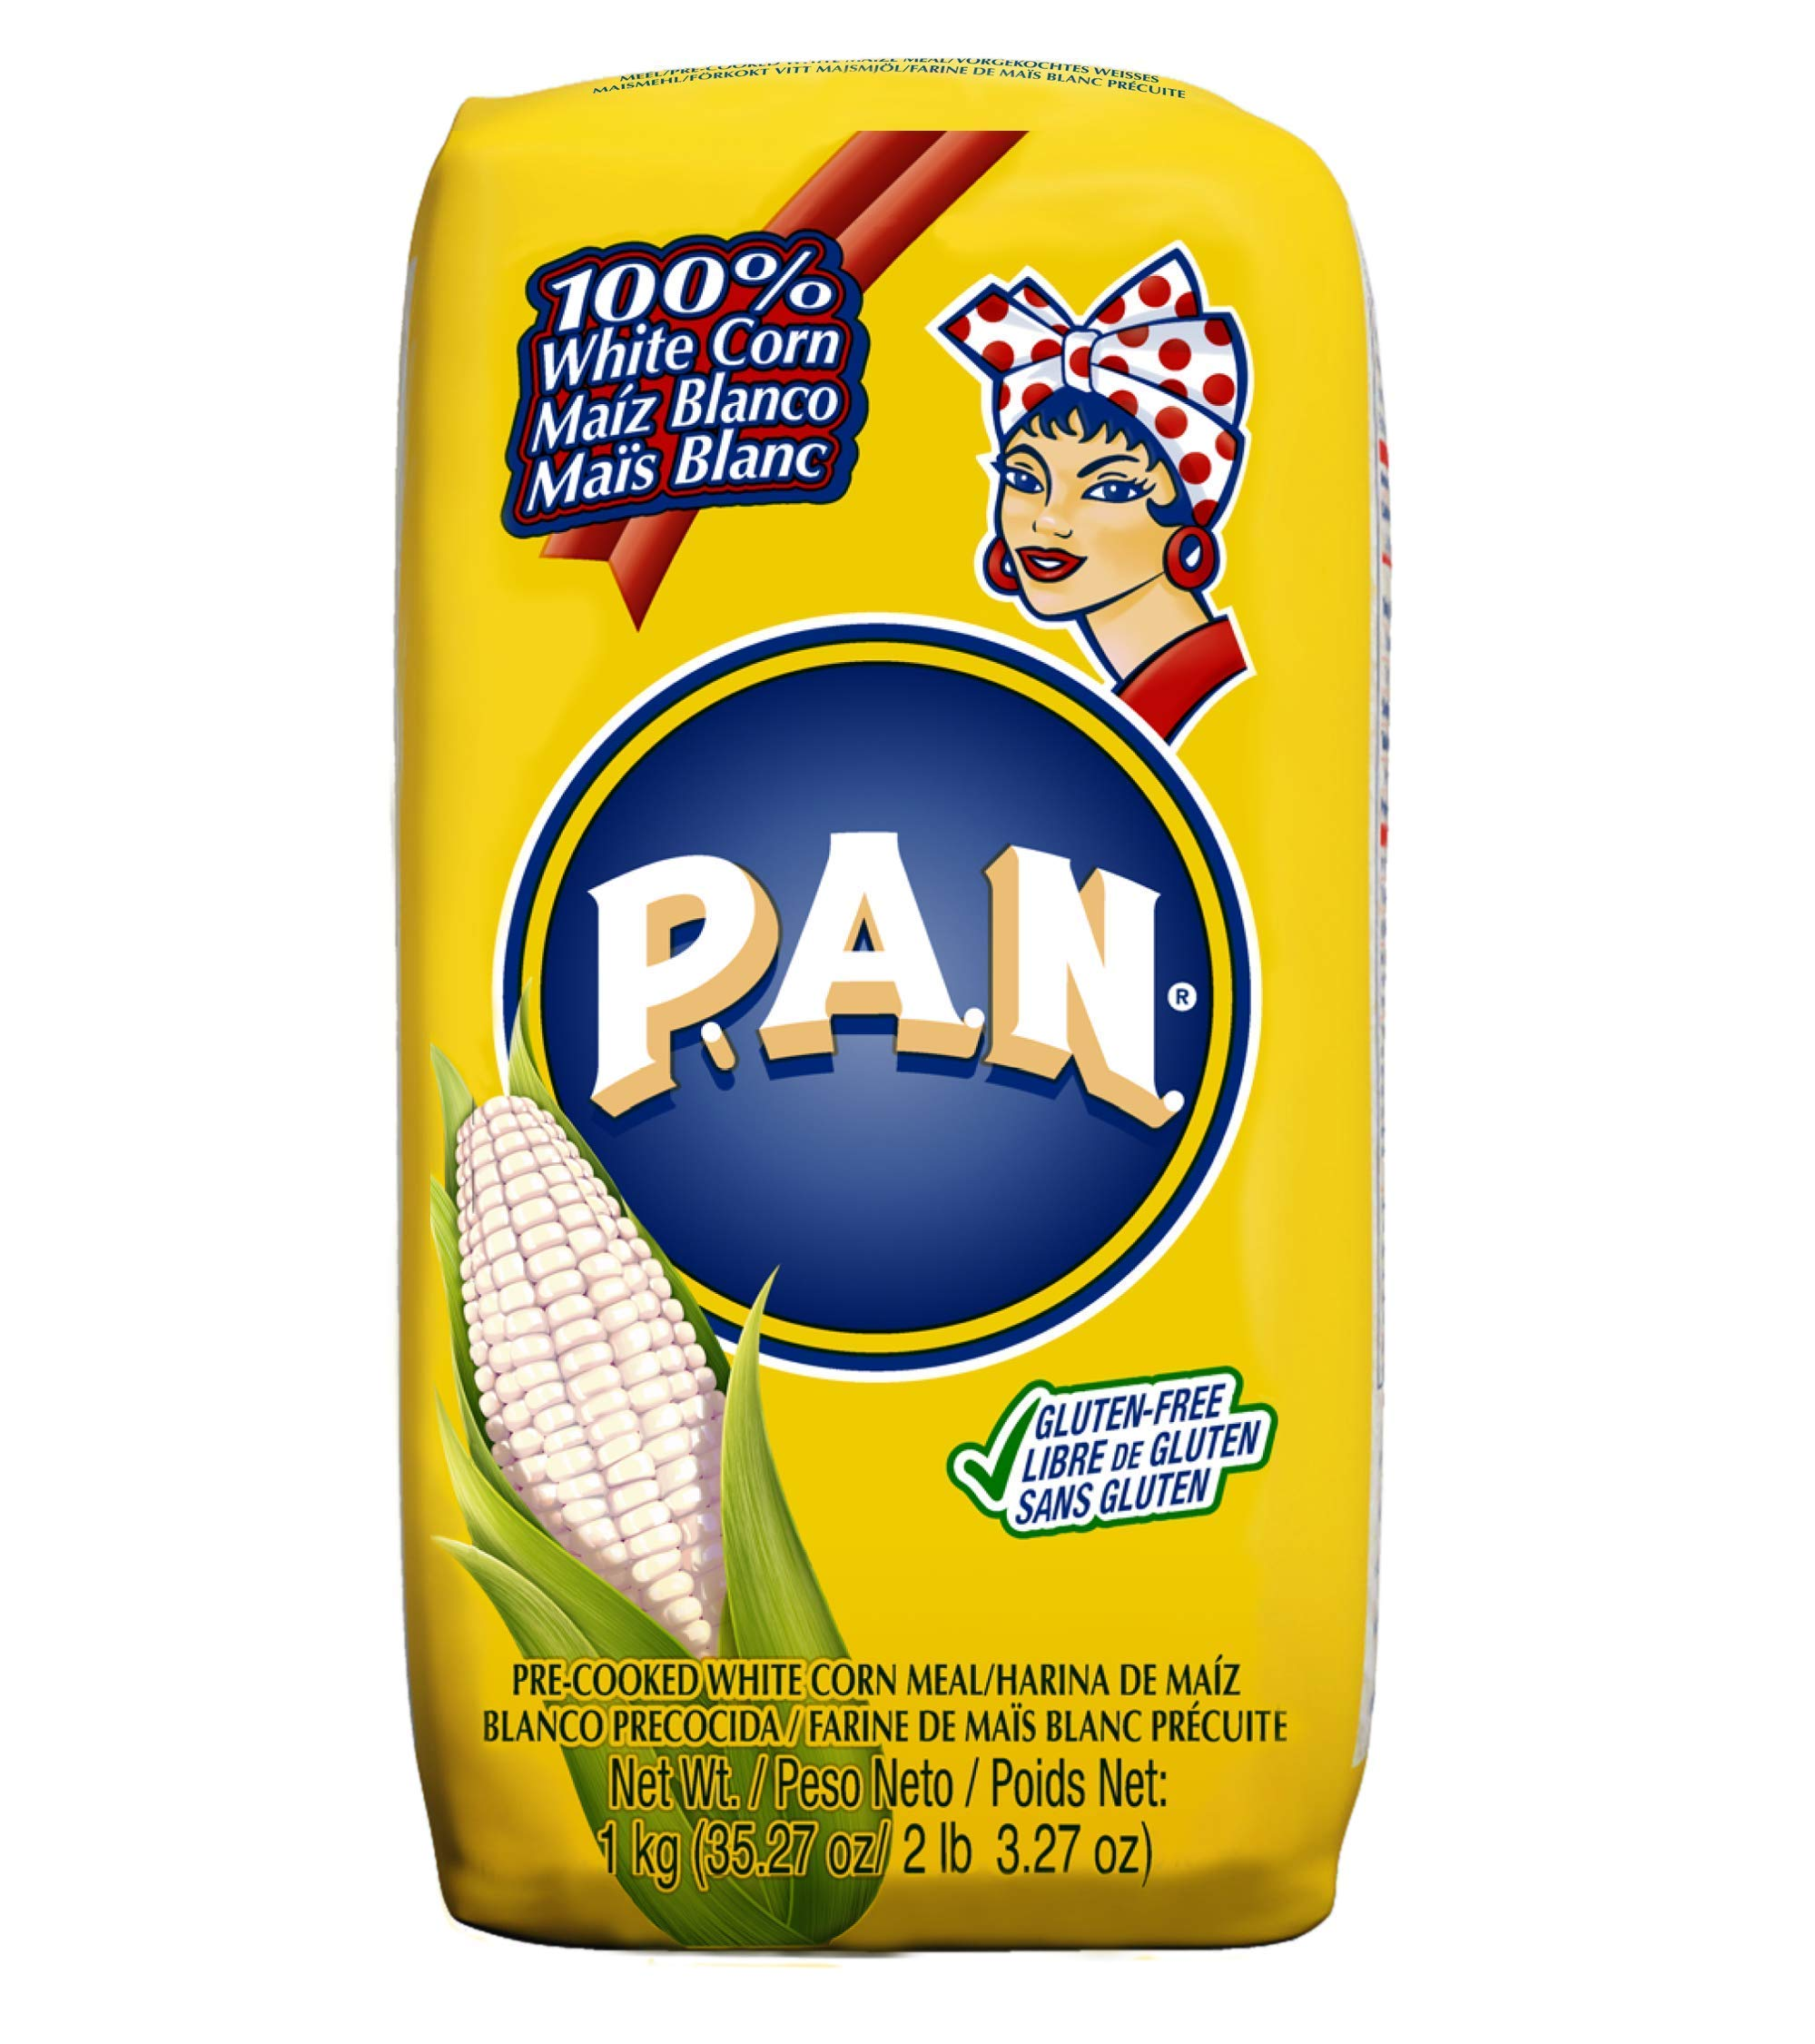 P.A.N. White Corn Meal - Pre-cooked Gluten Free and Kosher Flour for Arepas, 1 kg (35 oz / 2 lb 3.3 oz) (Pack of 5) by P.A.N.